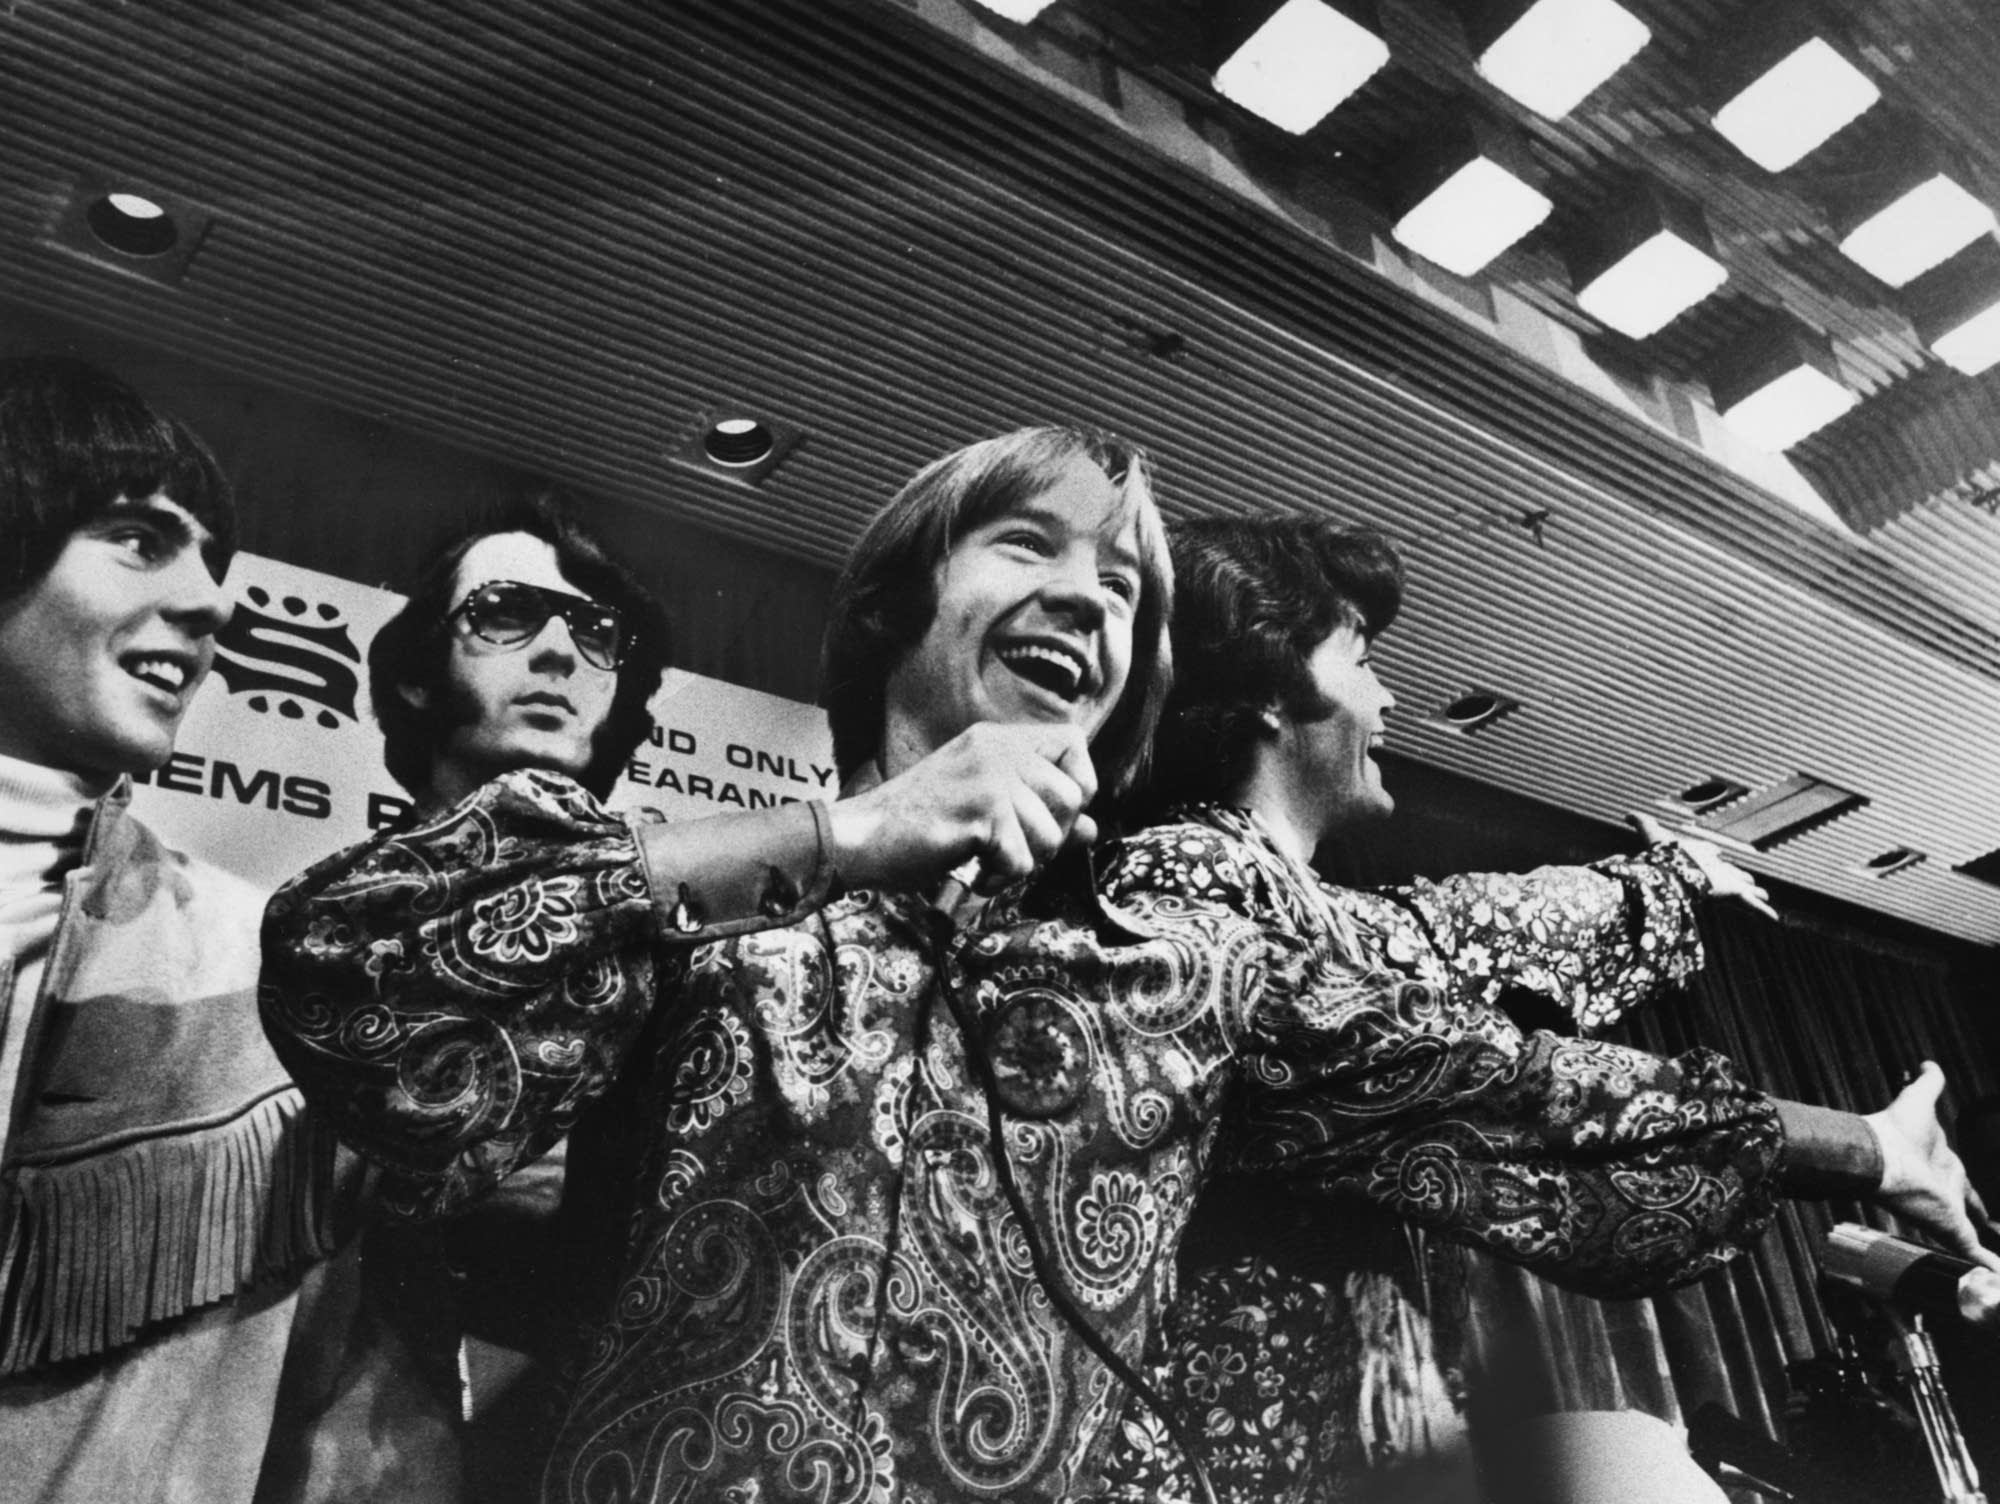 Peter Tork takes the mic with the Monkees in London, 1967.